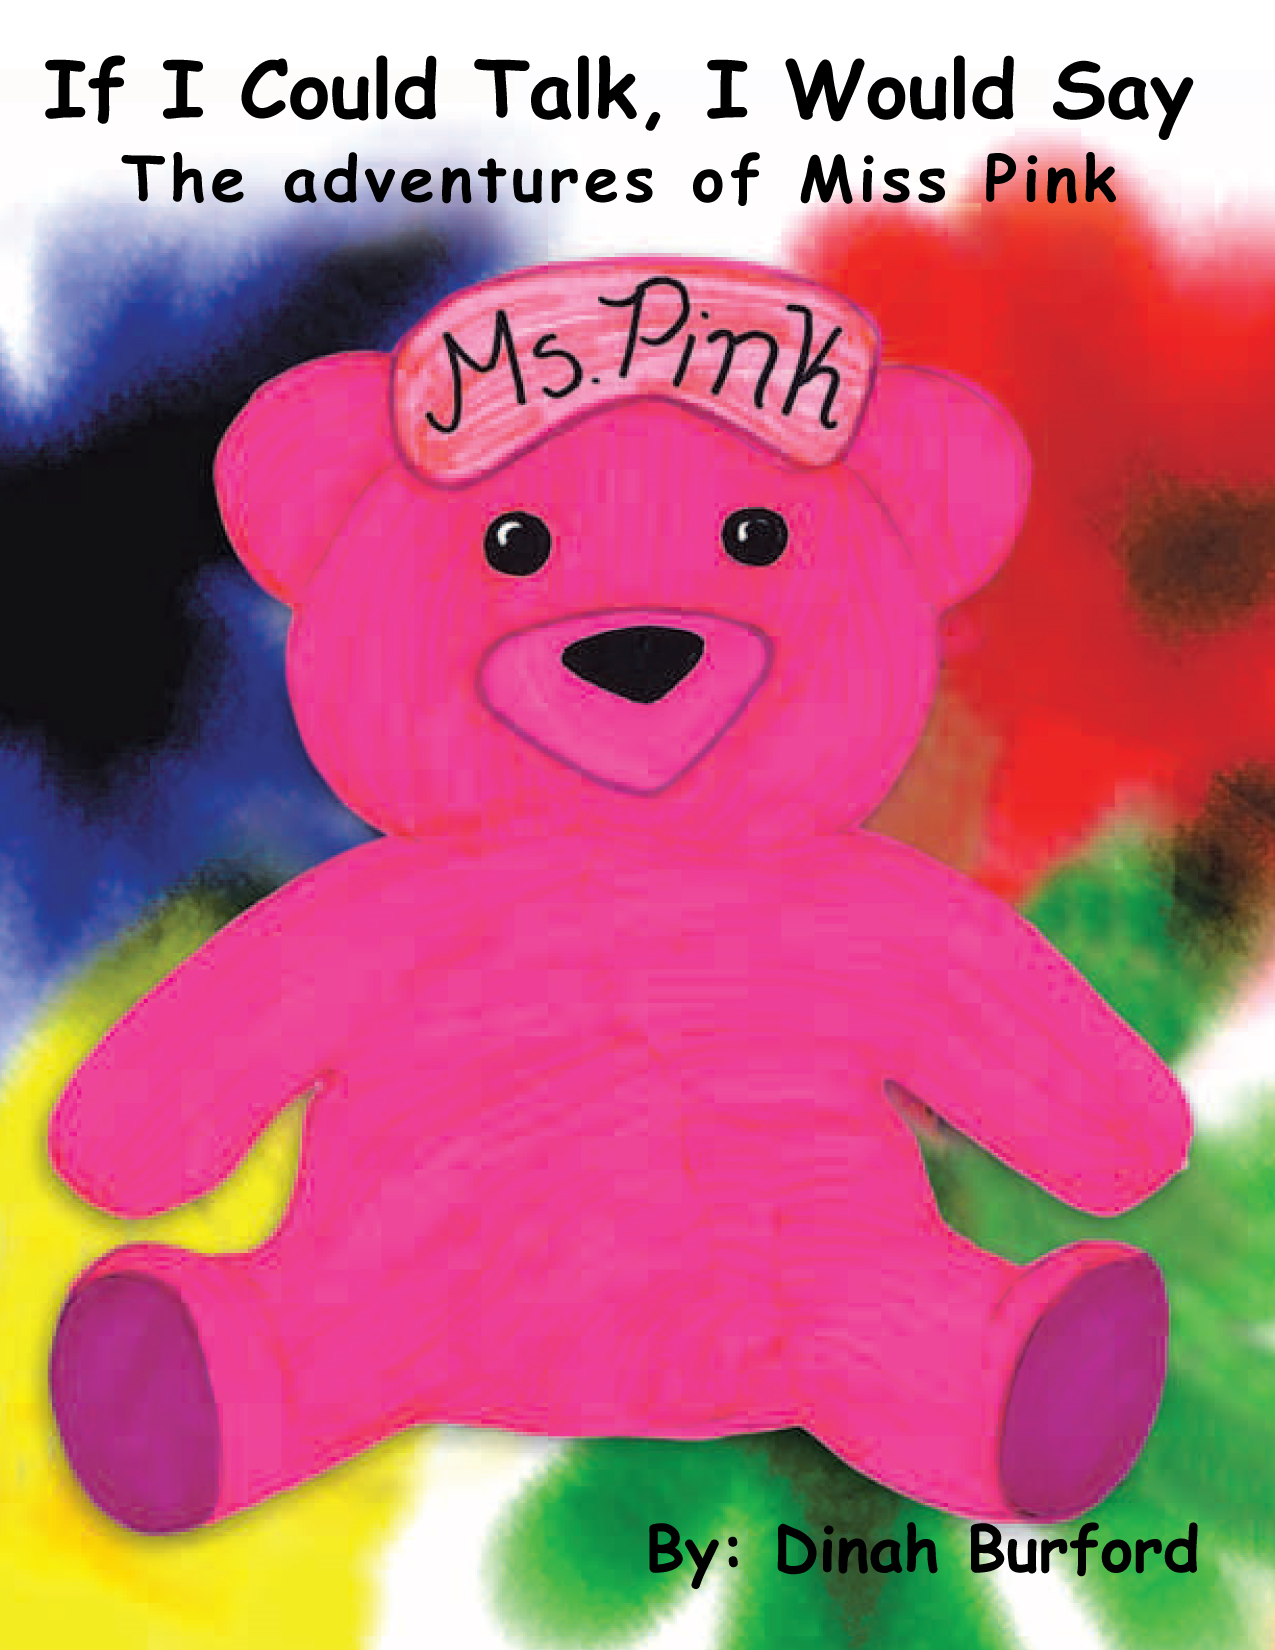 If I Could Talk, I Would Say The adventures of Miss Pink